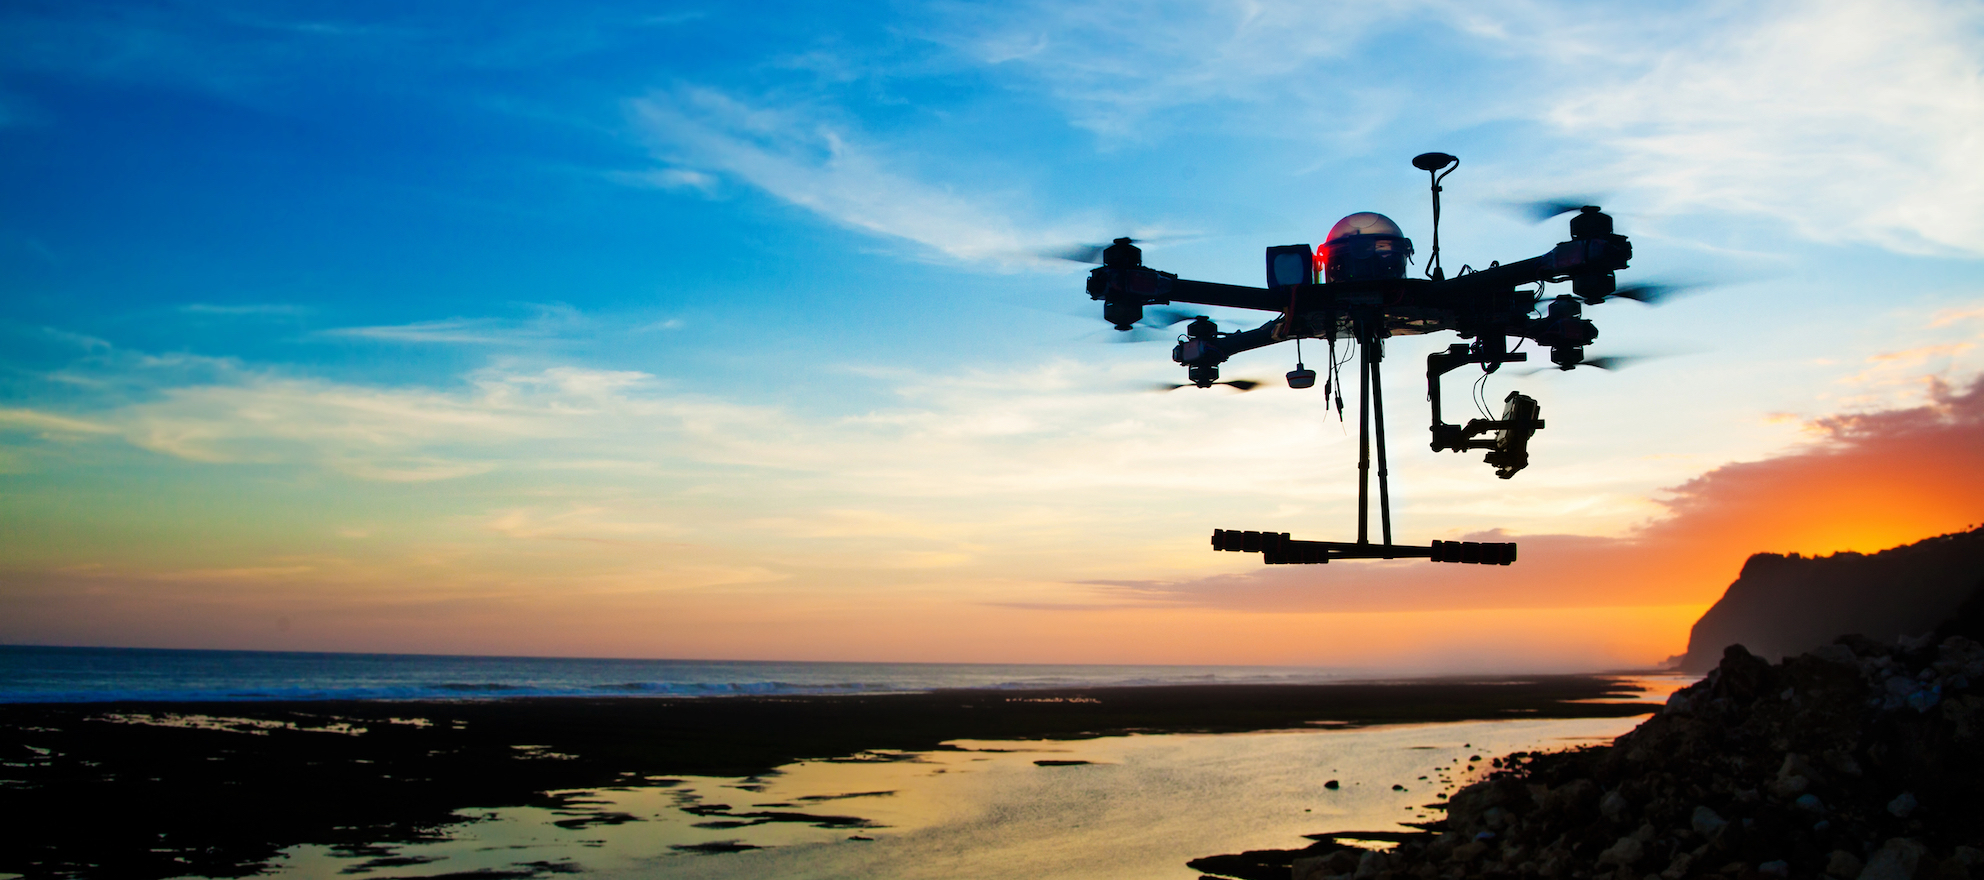 Drones must be registered with Federal Aviation Administration